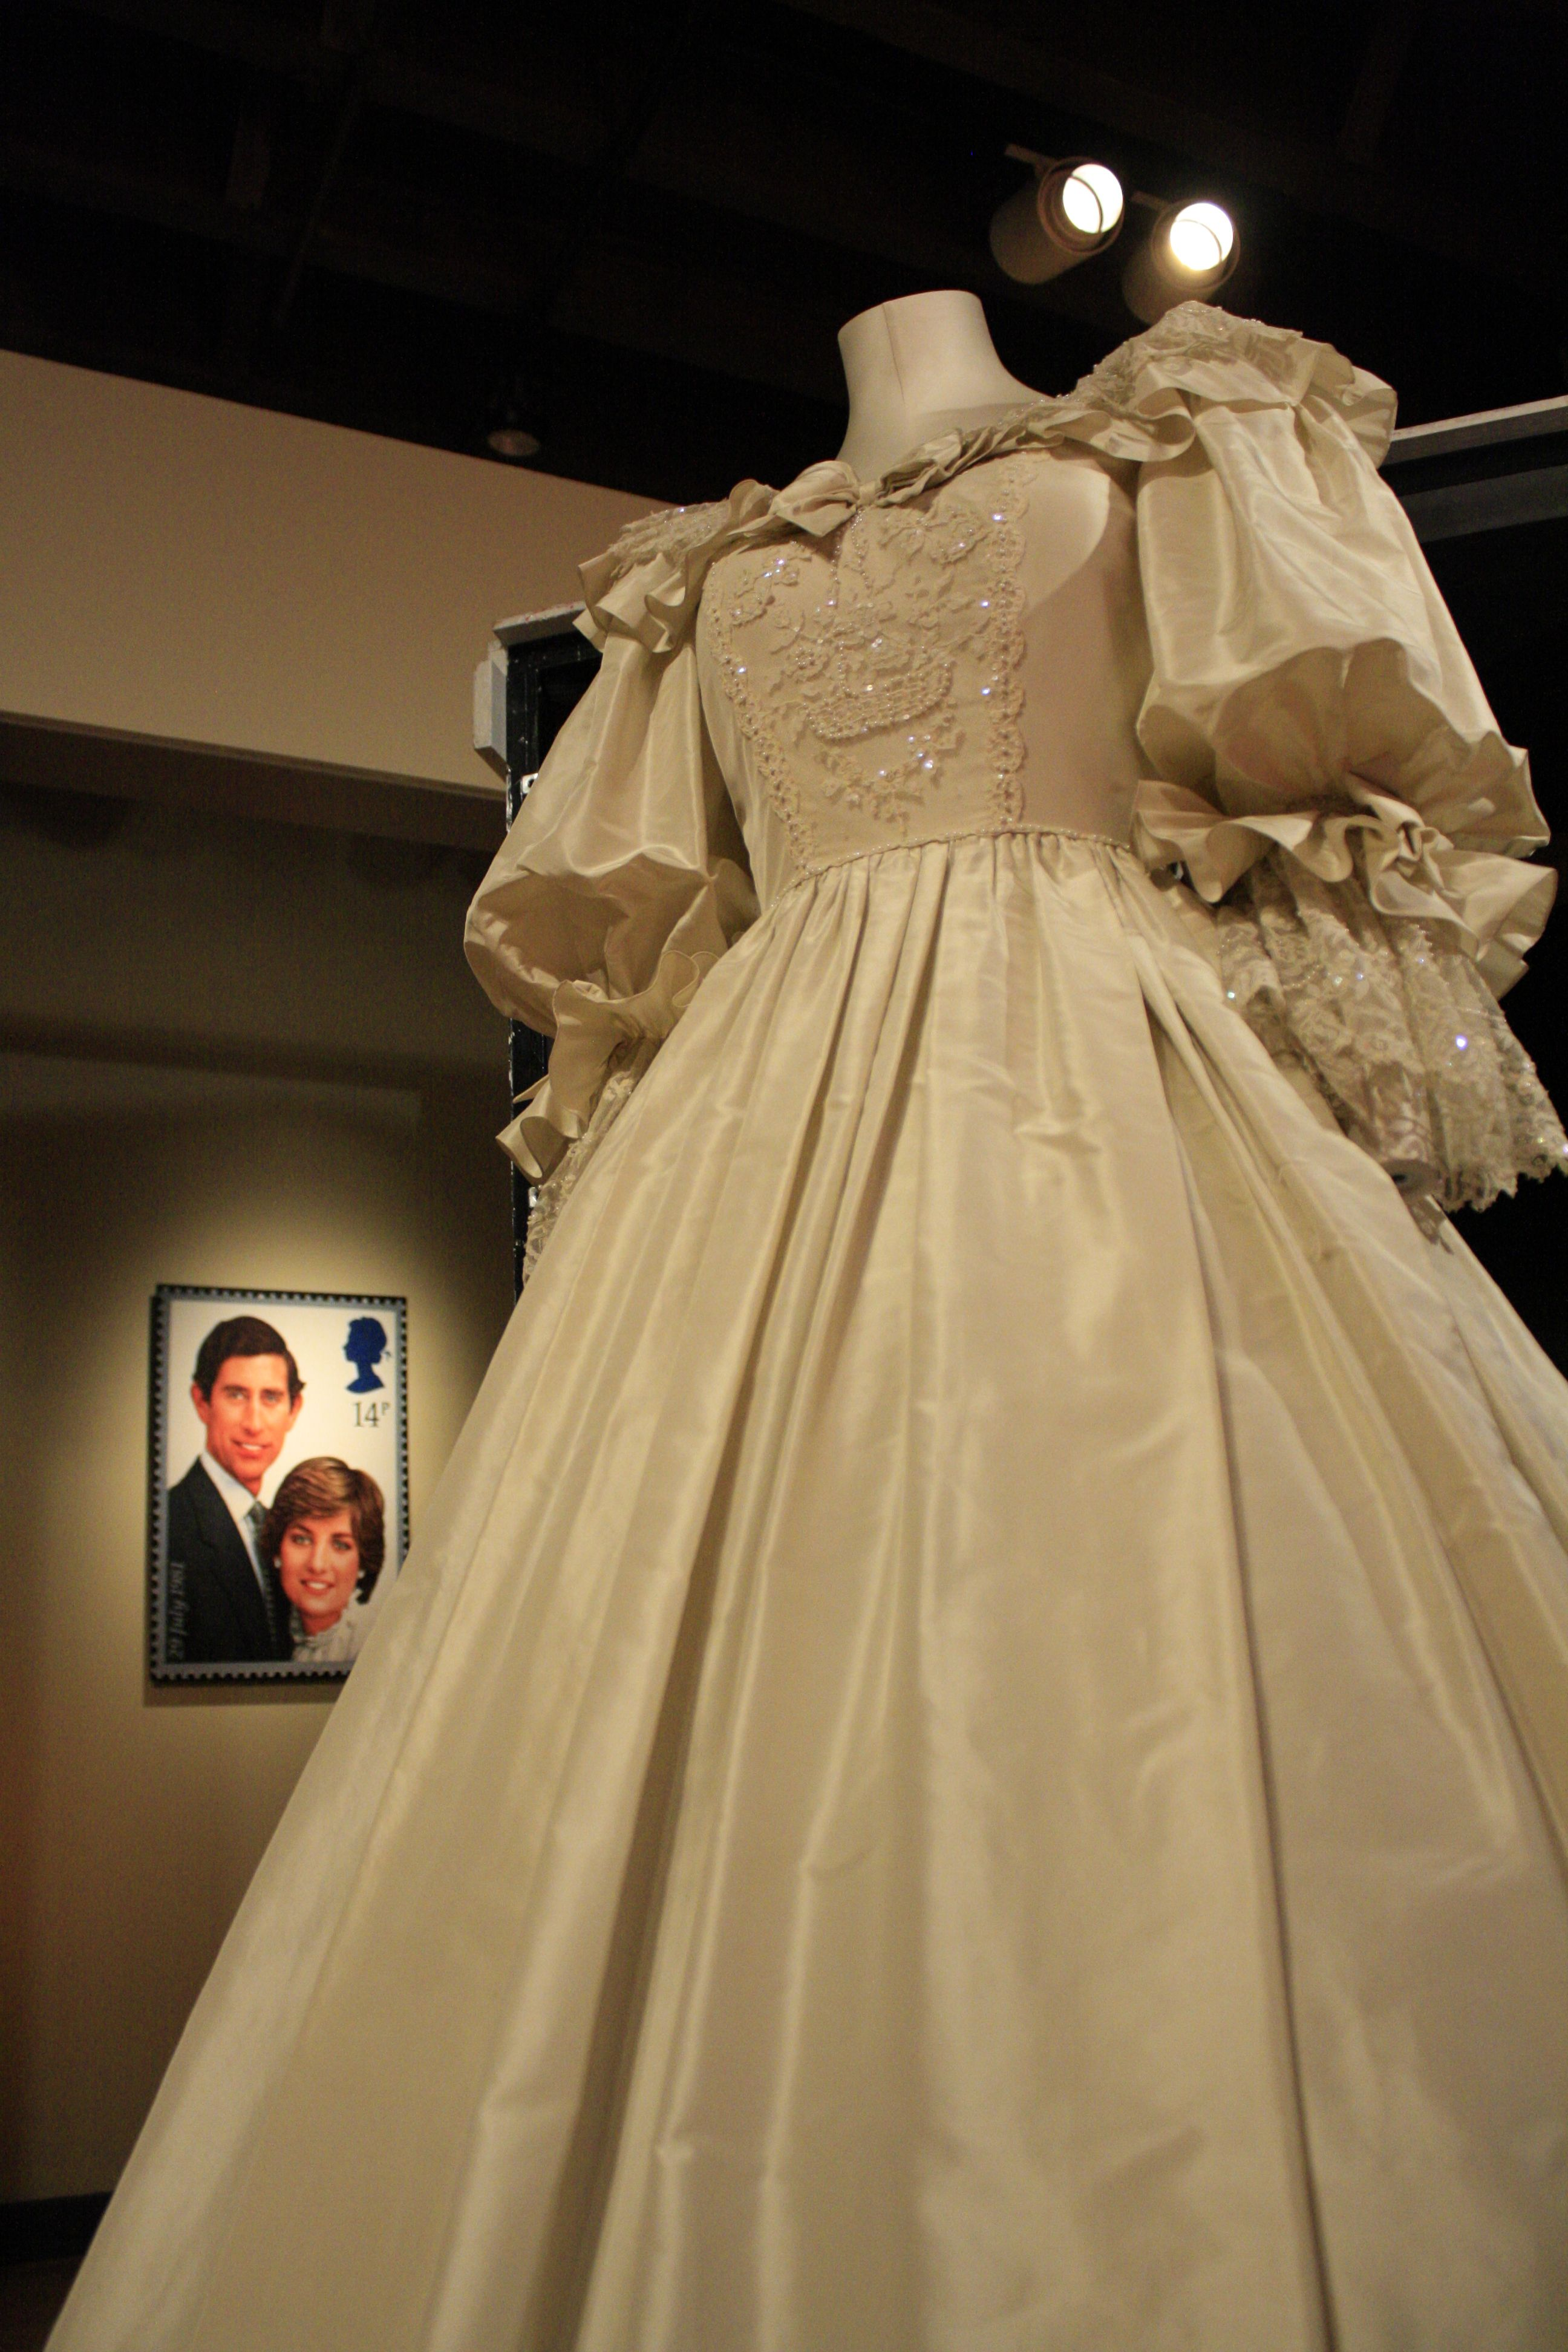 The Princess Of Wales Wedding Gown Part Of The Frazier History Museum S Exhibit Diana A Cel Royal Wedding Dress Royal Wedding Gowns British Wedding Dresses